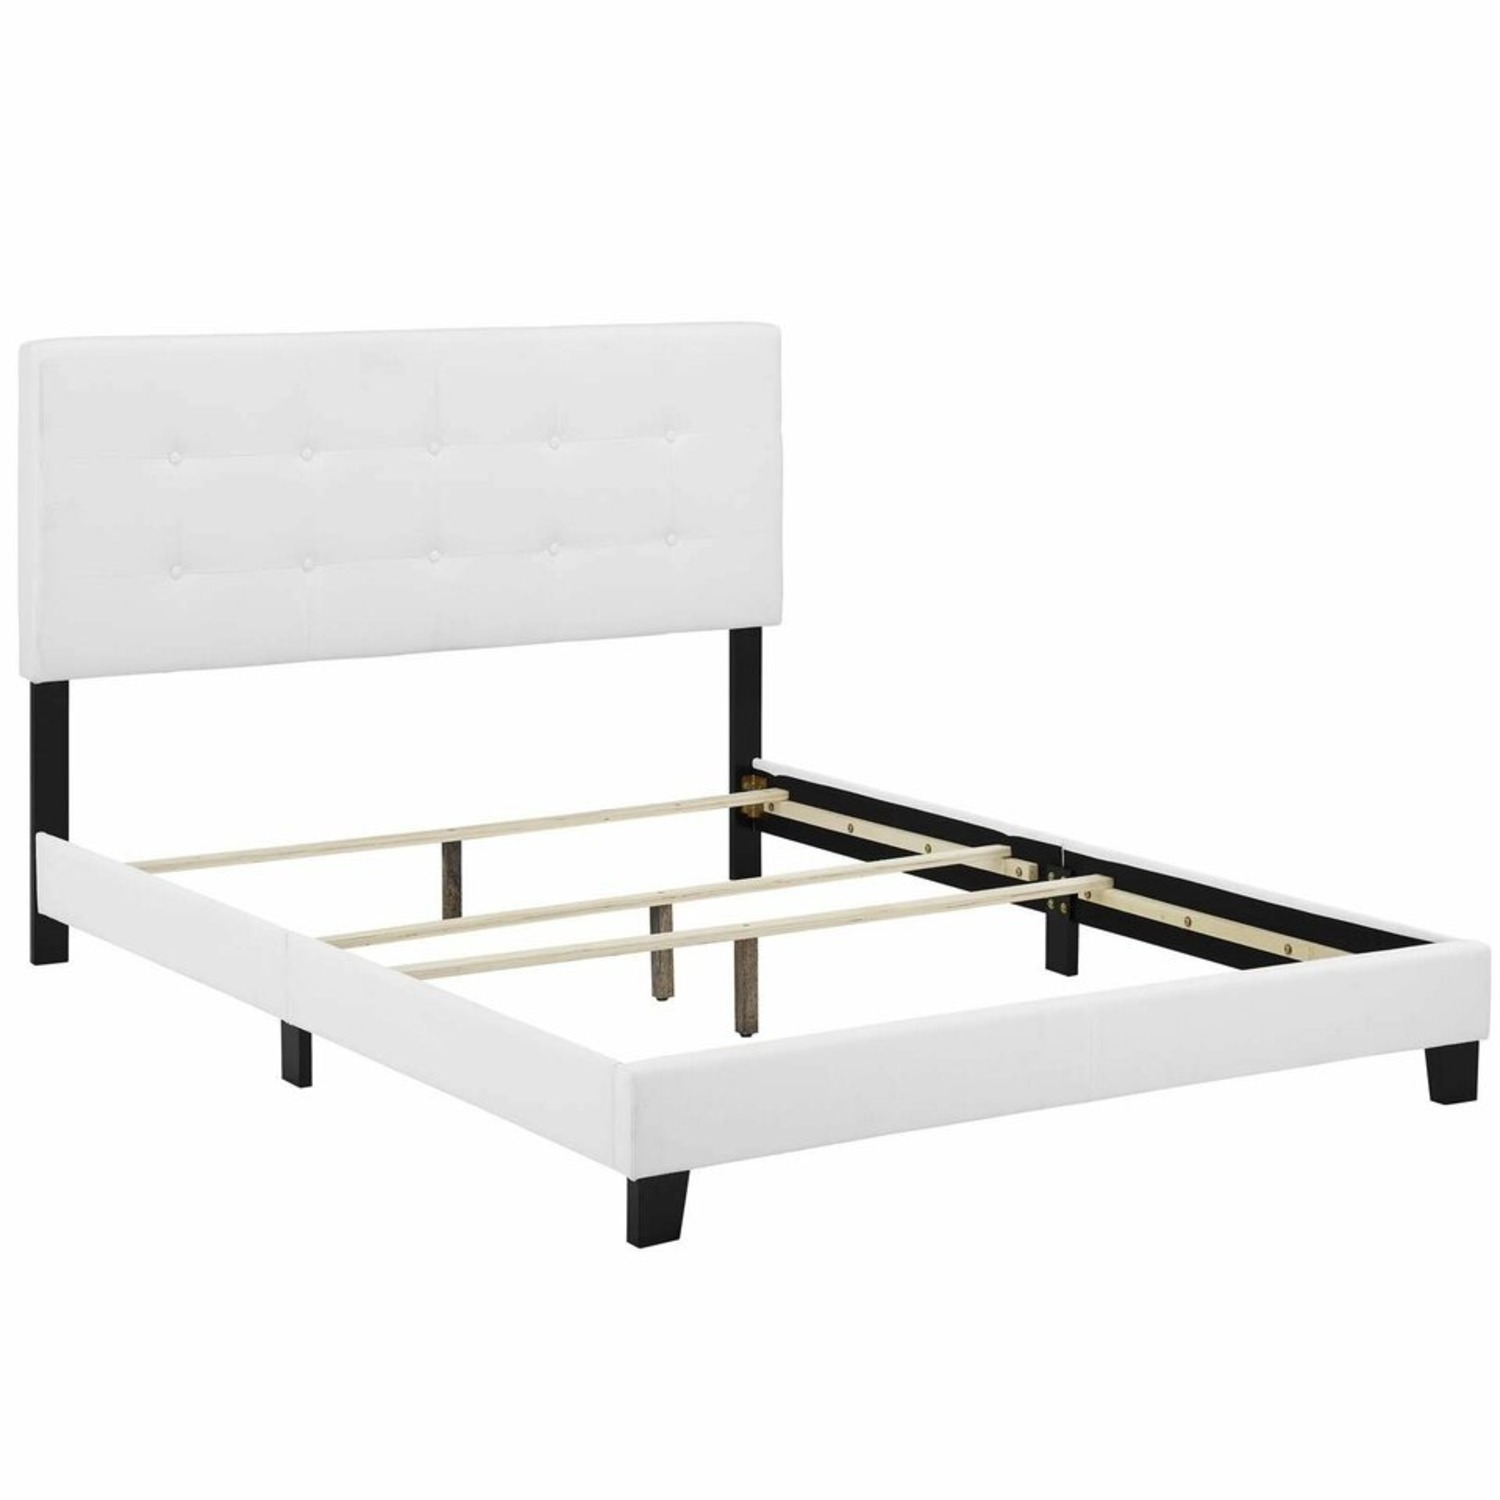 Contemporary Style Full Bed In White Upholstery - image-3